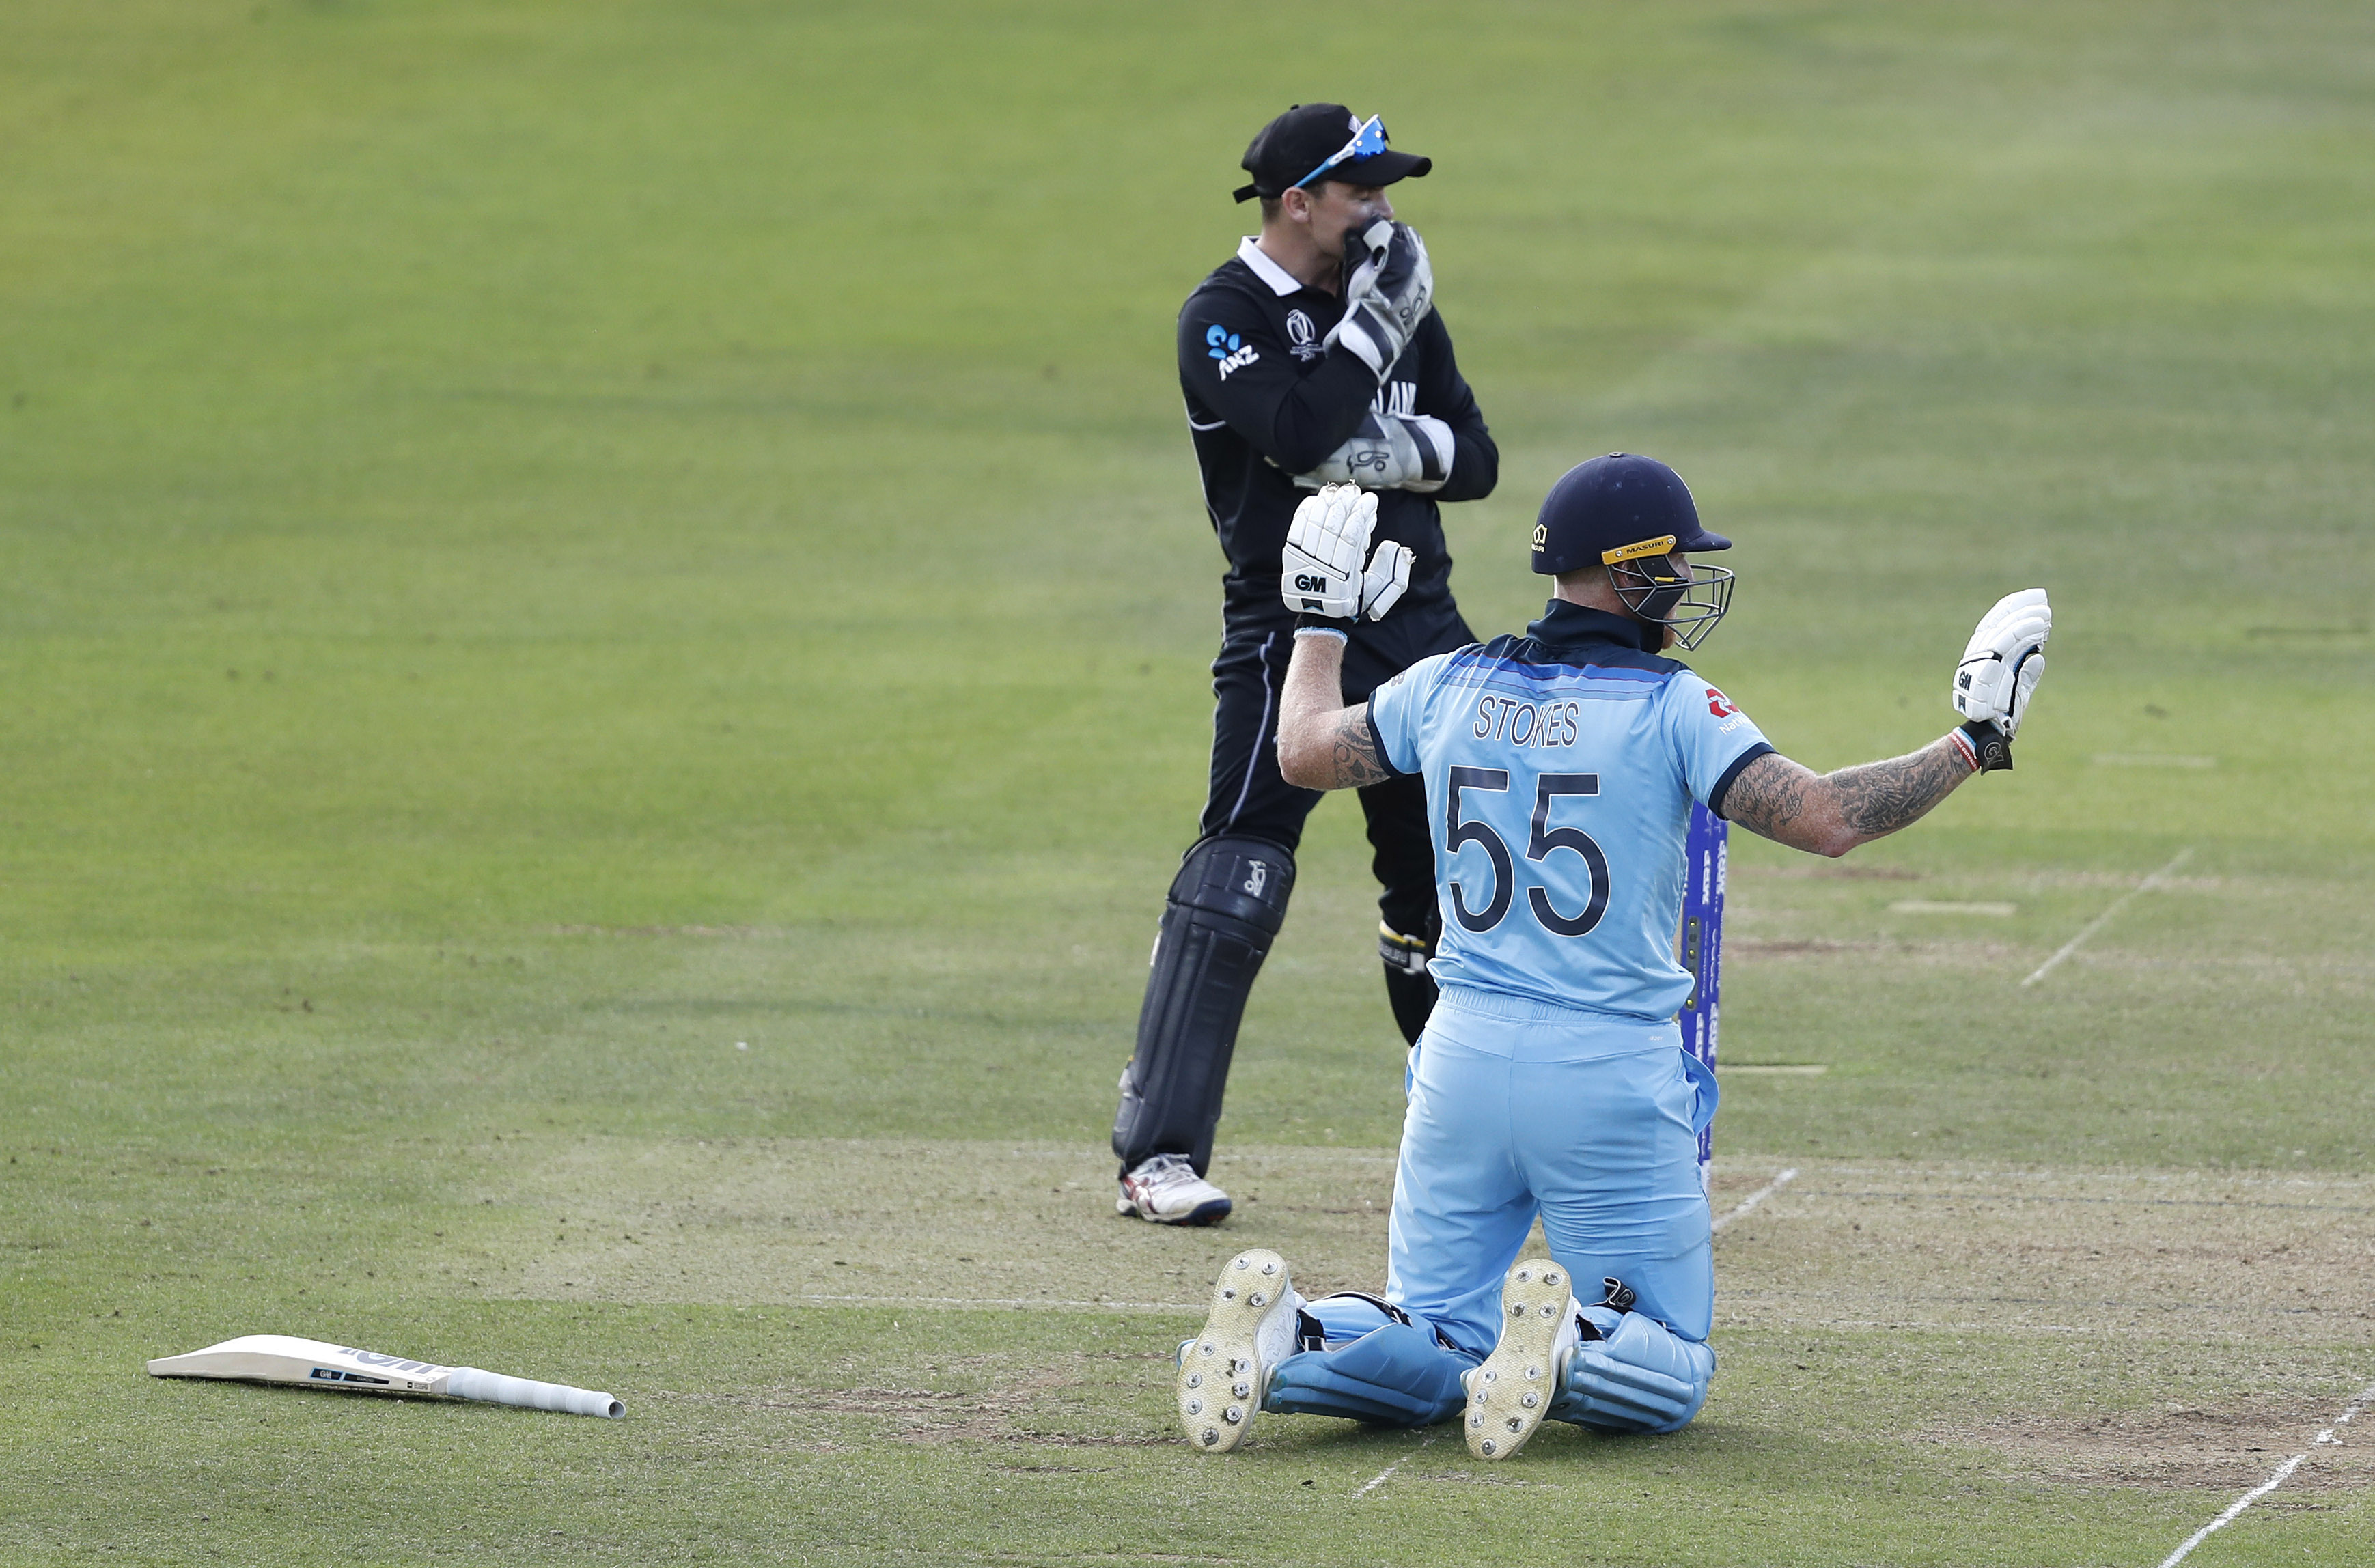 Stokes apologises following his fortunate six. Image: PA Images